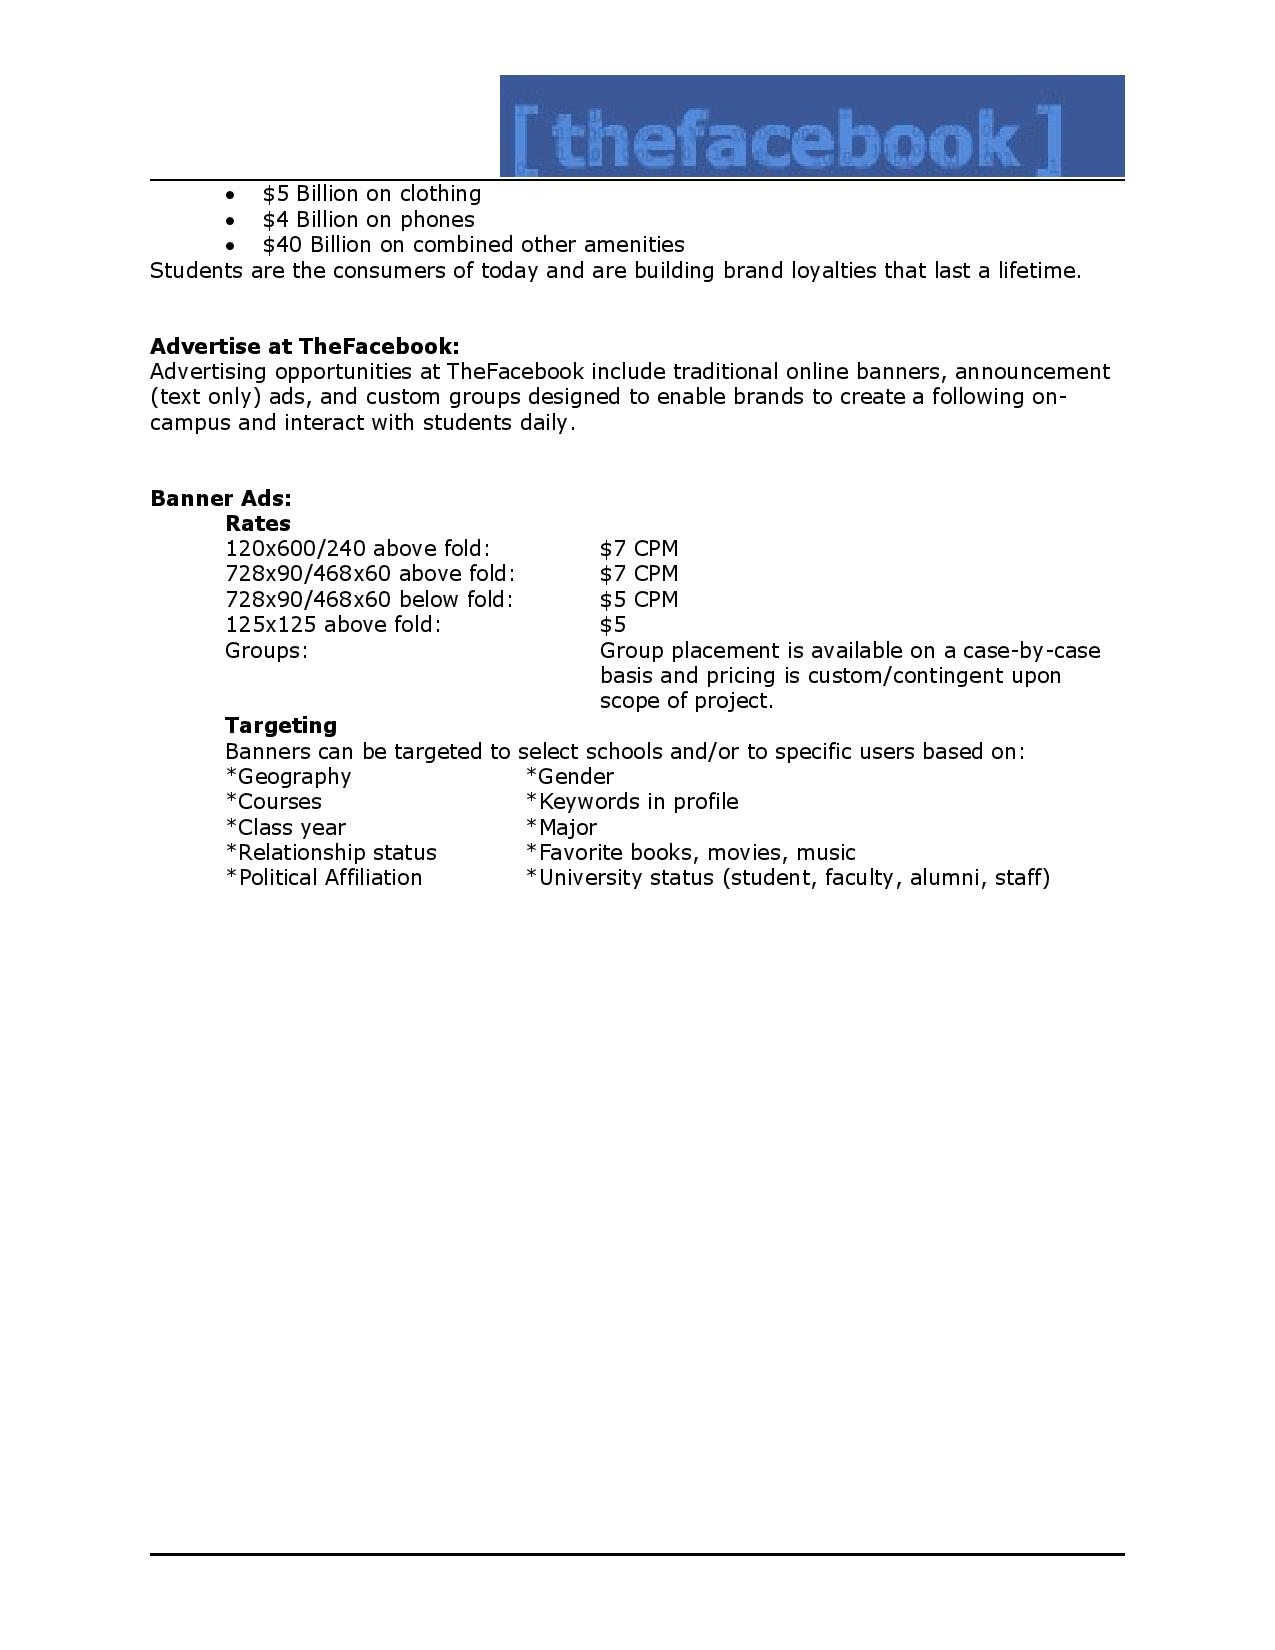 Facebook First Proposal 4.18.05-page-002